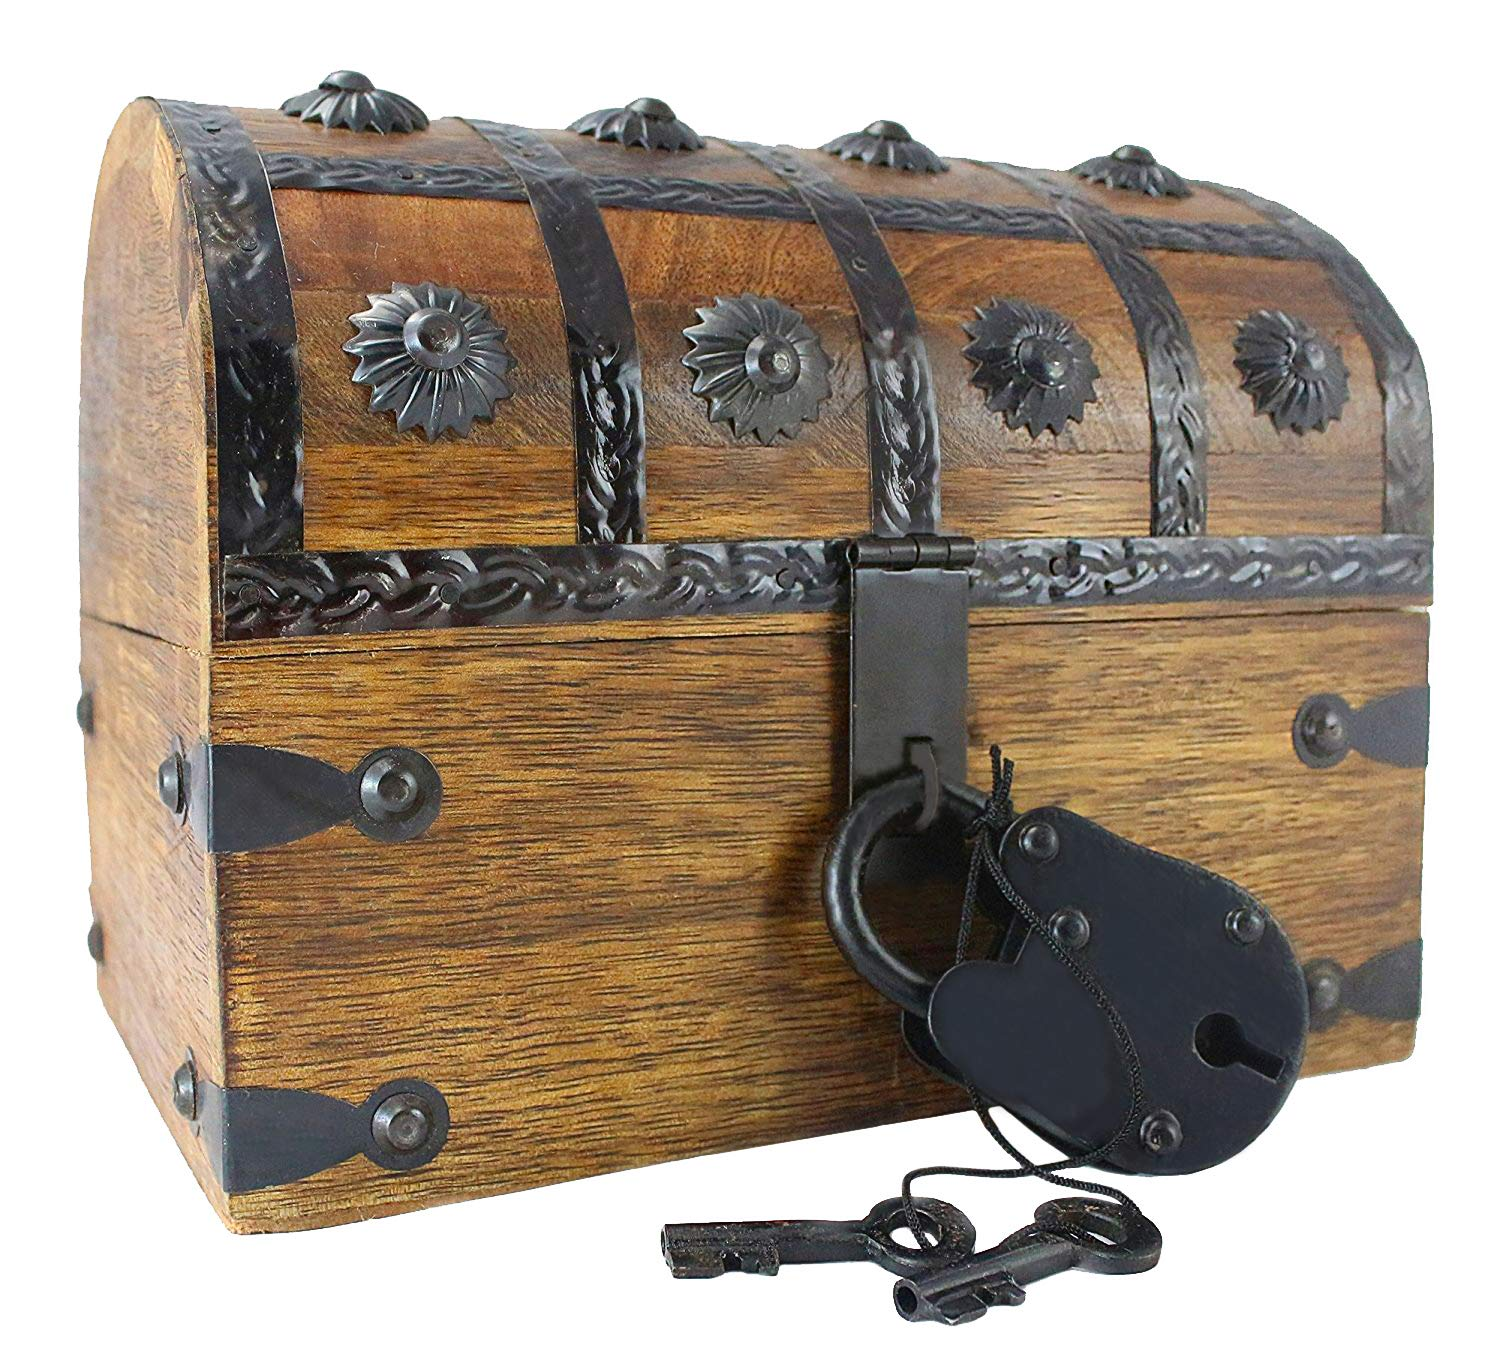 """Well Pack Box Wooden Pirate Treasure Chest 8"""" x 6"""" x 6"""" Box Blackbeard Model Authentic Antique Style With Black Hasp Latch Includes Master Lock & Vintage Skeleton Keys"""